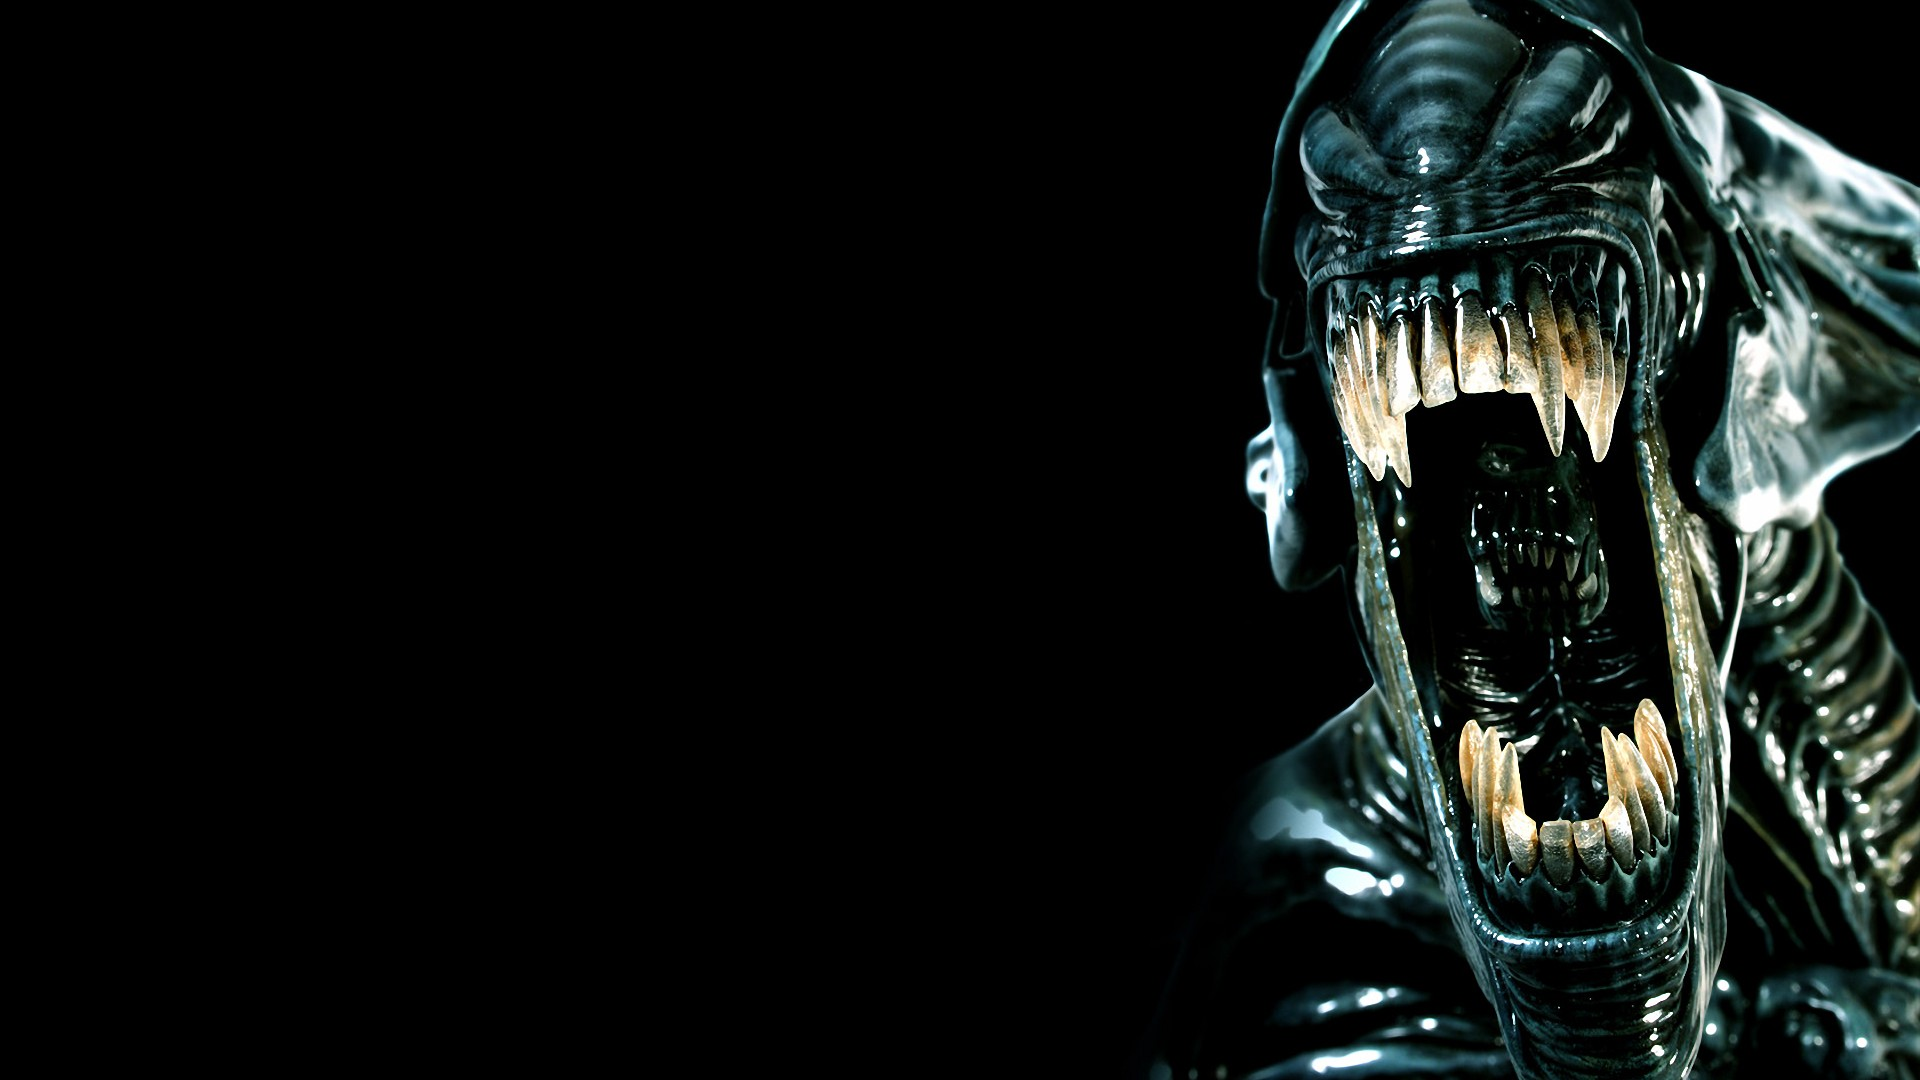 Aliens HD Wallpaper  & Picture